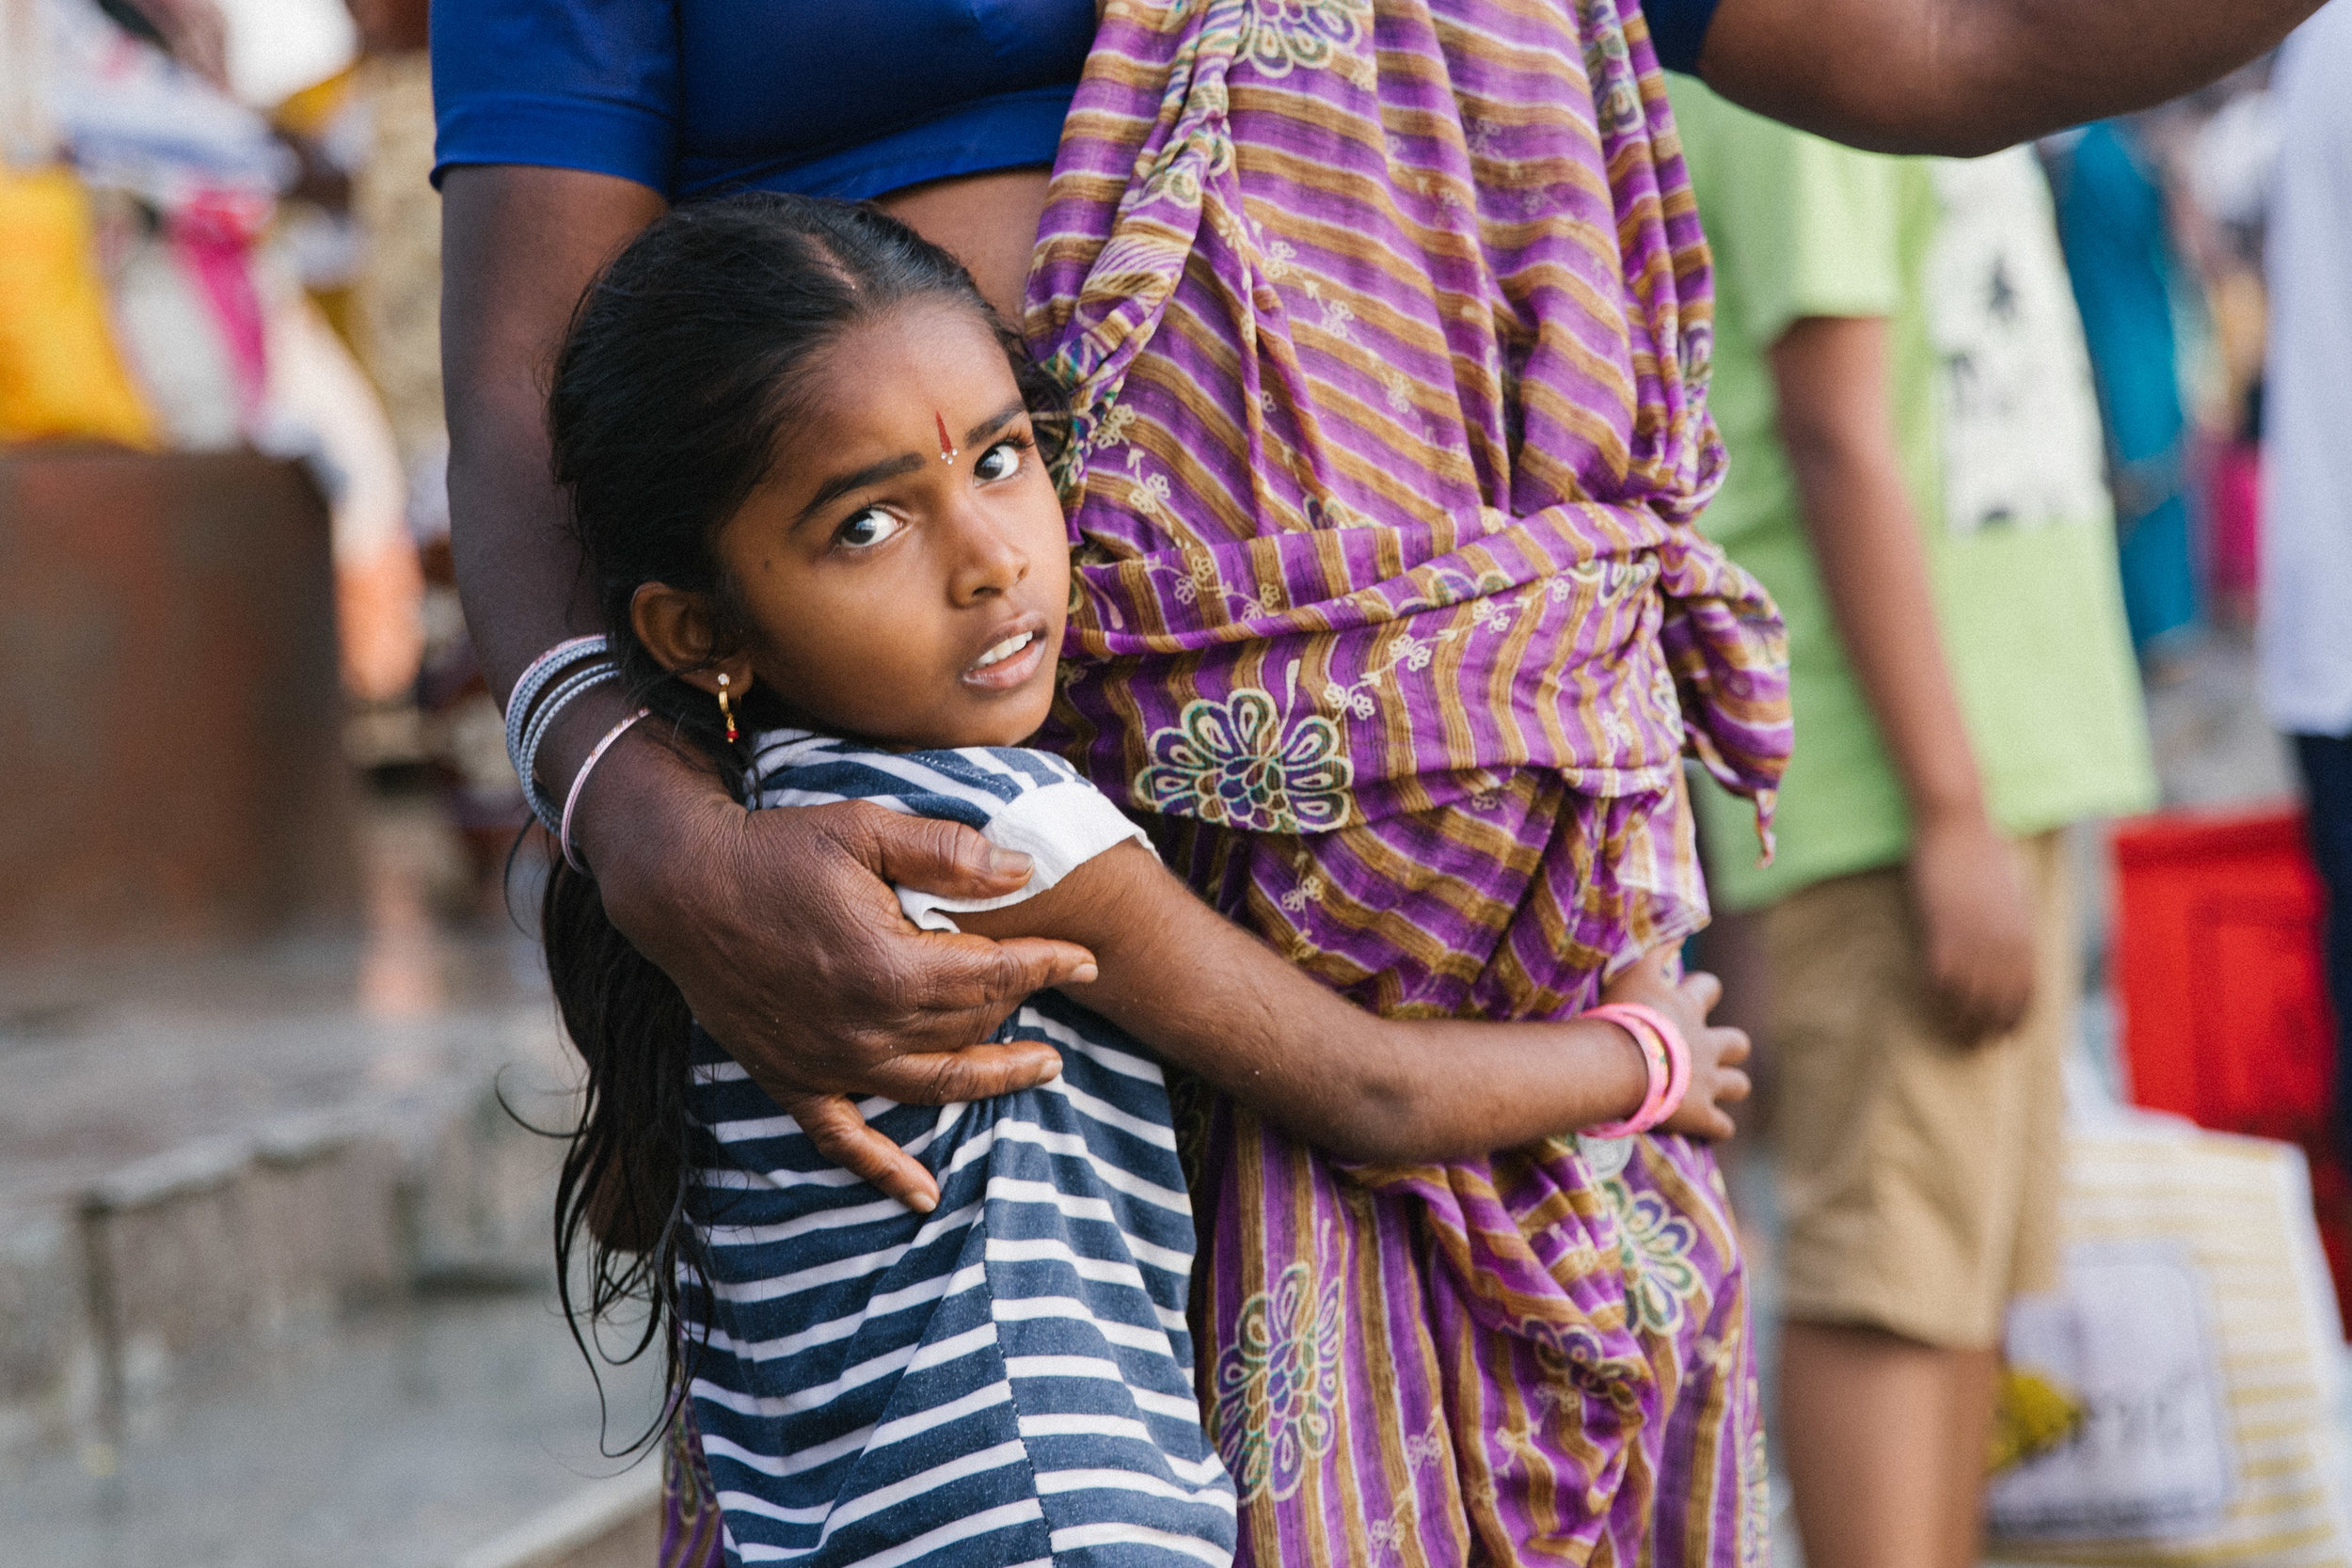 Their team was stunned to find an estimated 100,000 women and children living in slavery… - many of whom had been sold by their impoverished families from North India and Nepal.